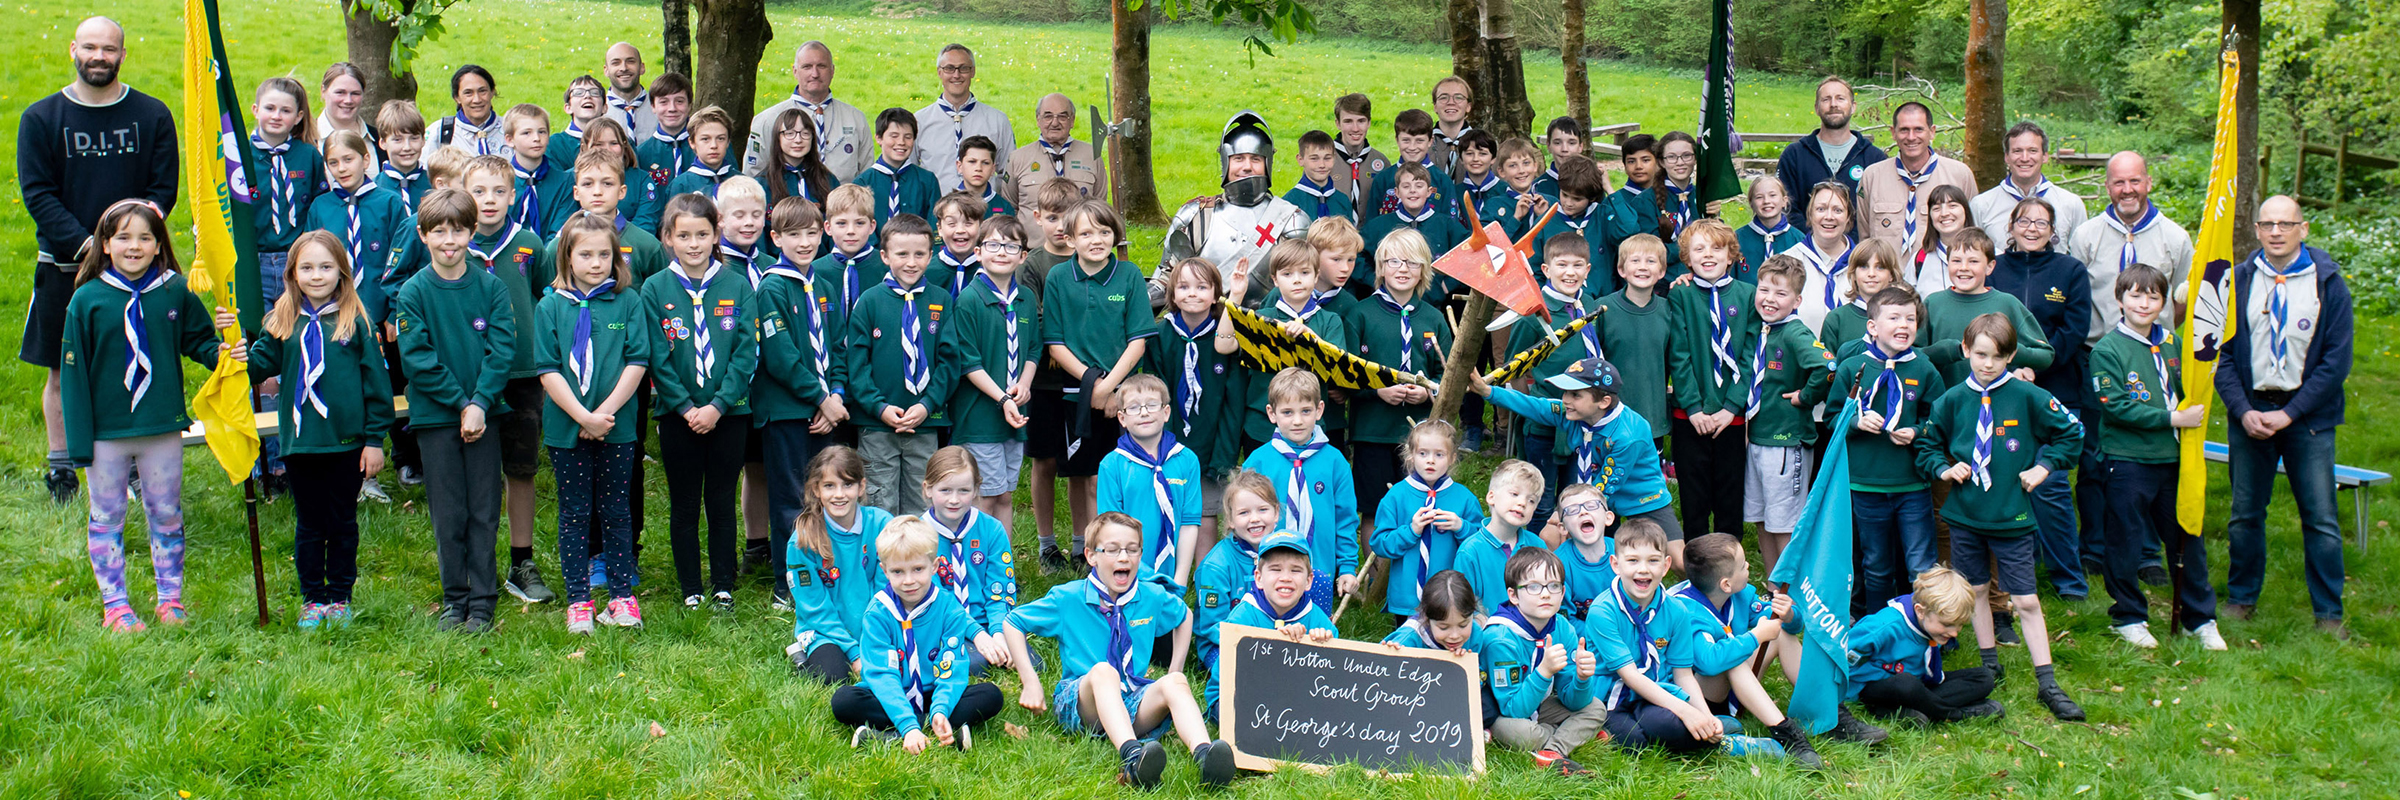 scout_group